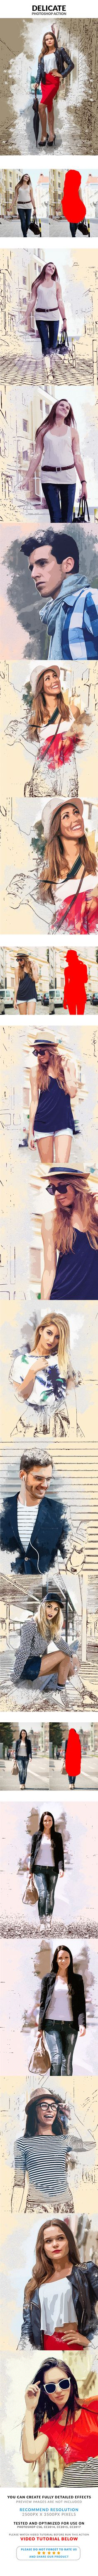 Delicate #Photoshop #Action - Photo Effects Actions